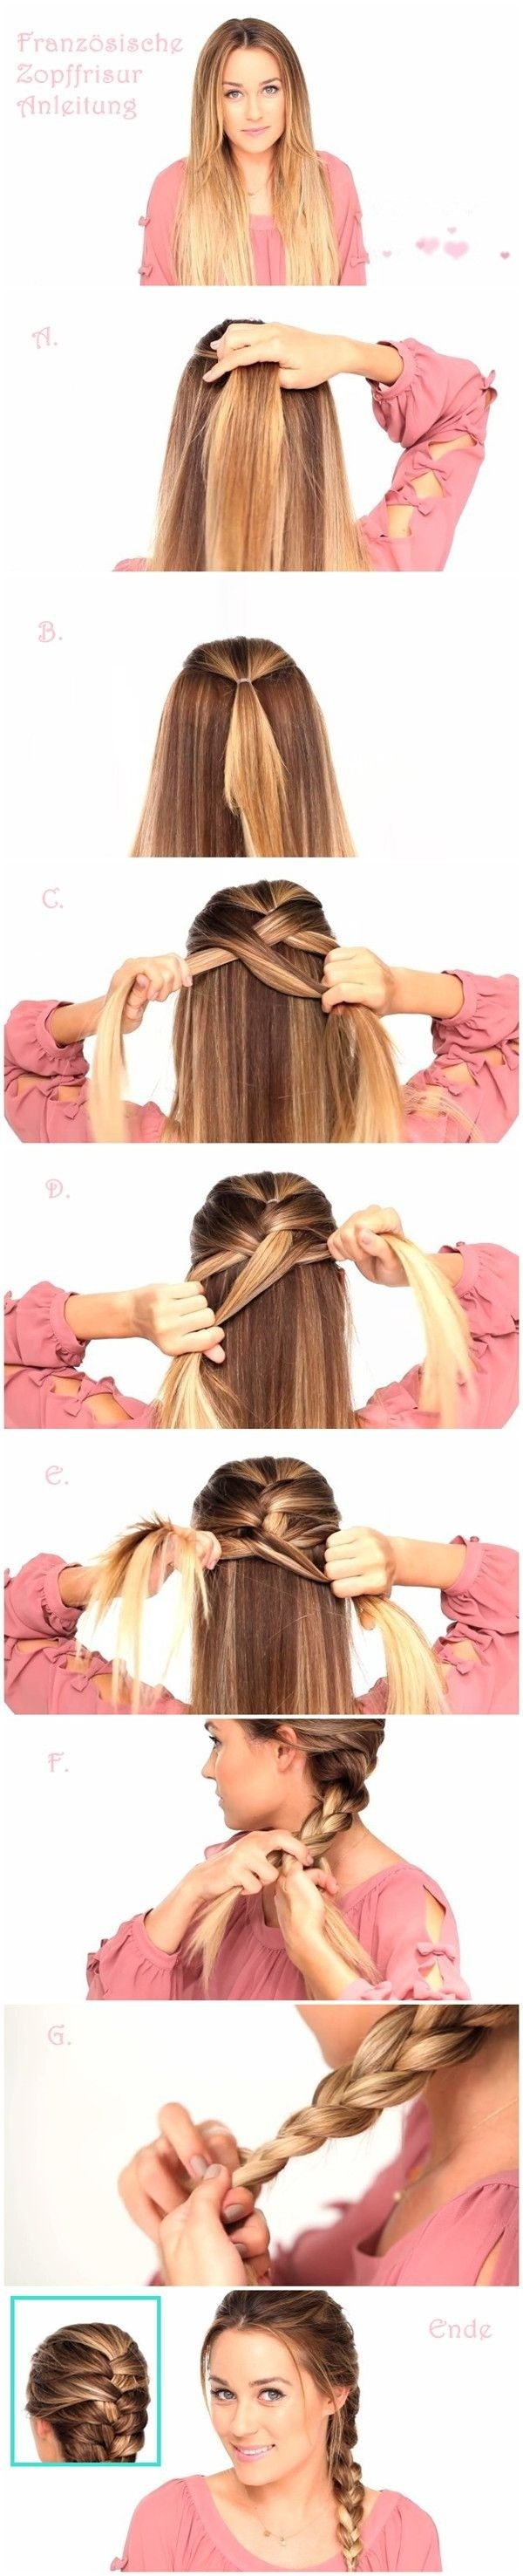 276 best hairstyles for medium length hair images on pinterest 10 french braids hairstyles tutorials everyday hair styles solutioingenieria